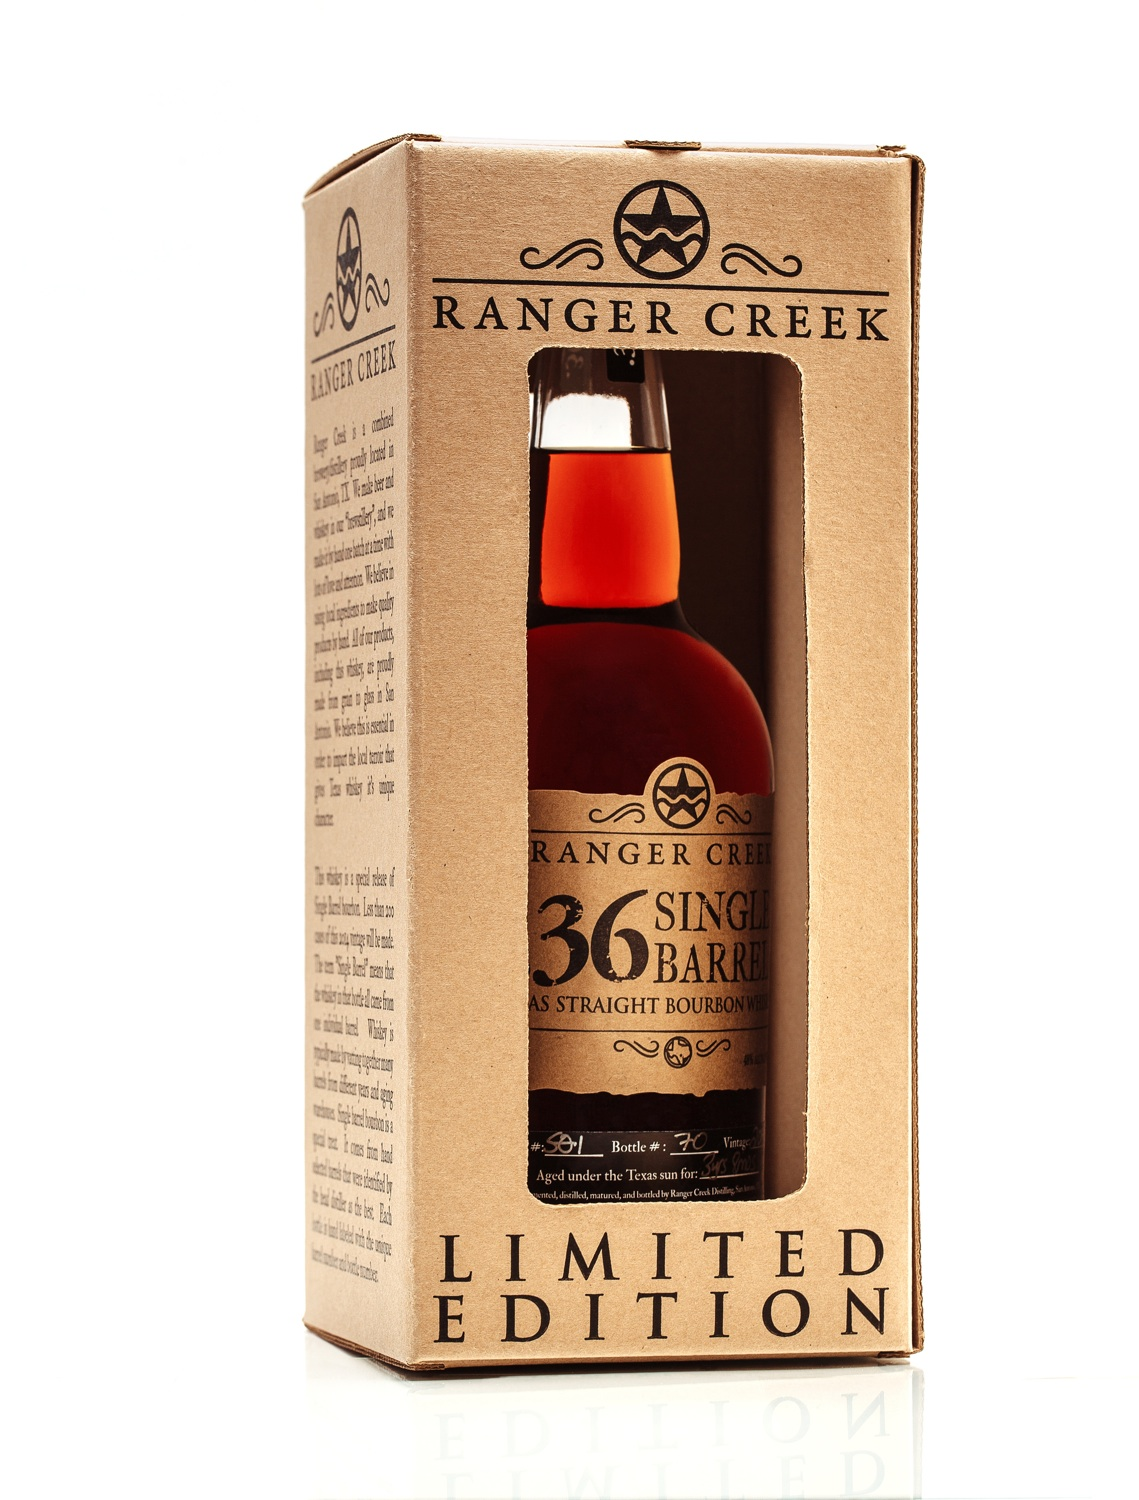 Ranger Creek 36 Single Barrel